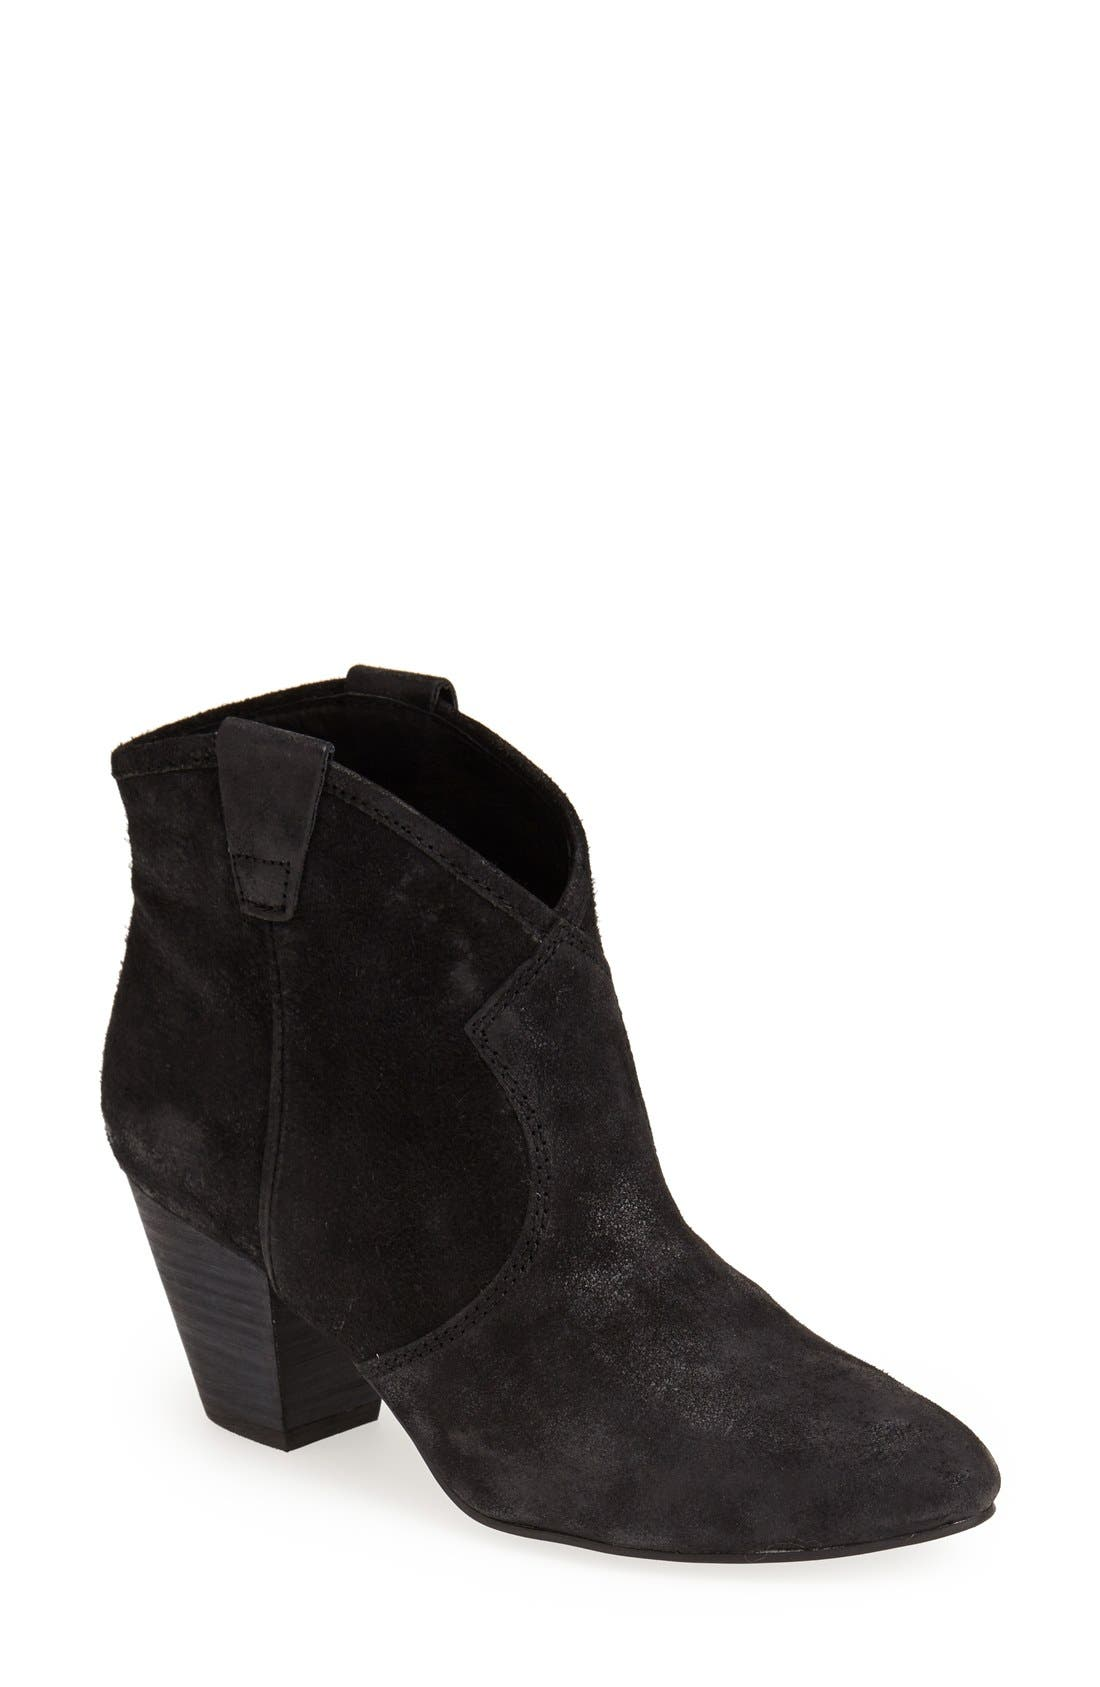 Alternate Image 1 Selected - Ash 'Jalouse' Bootie (Women)